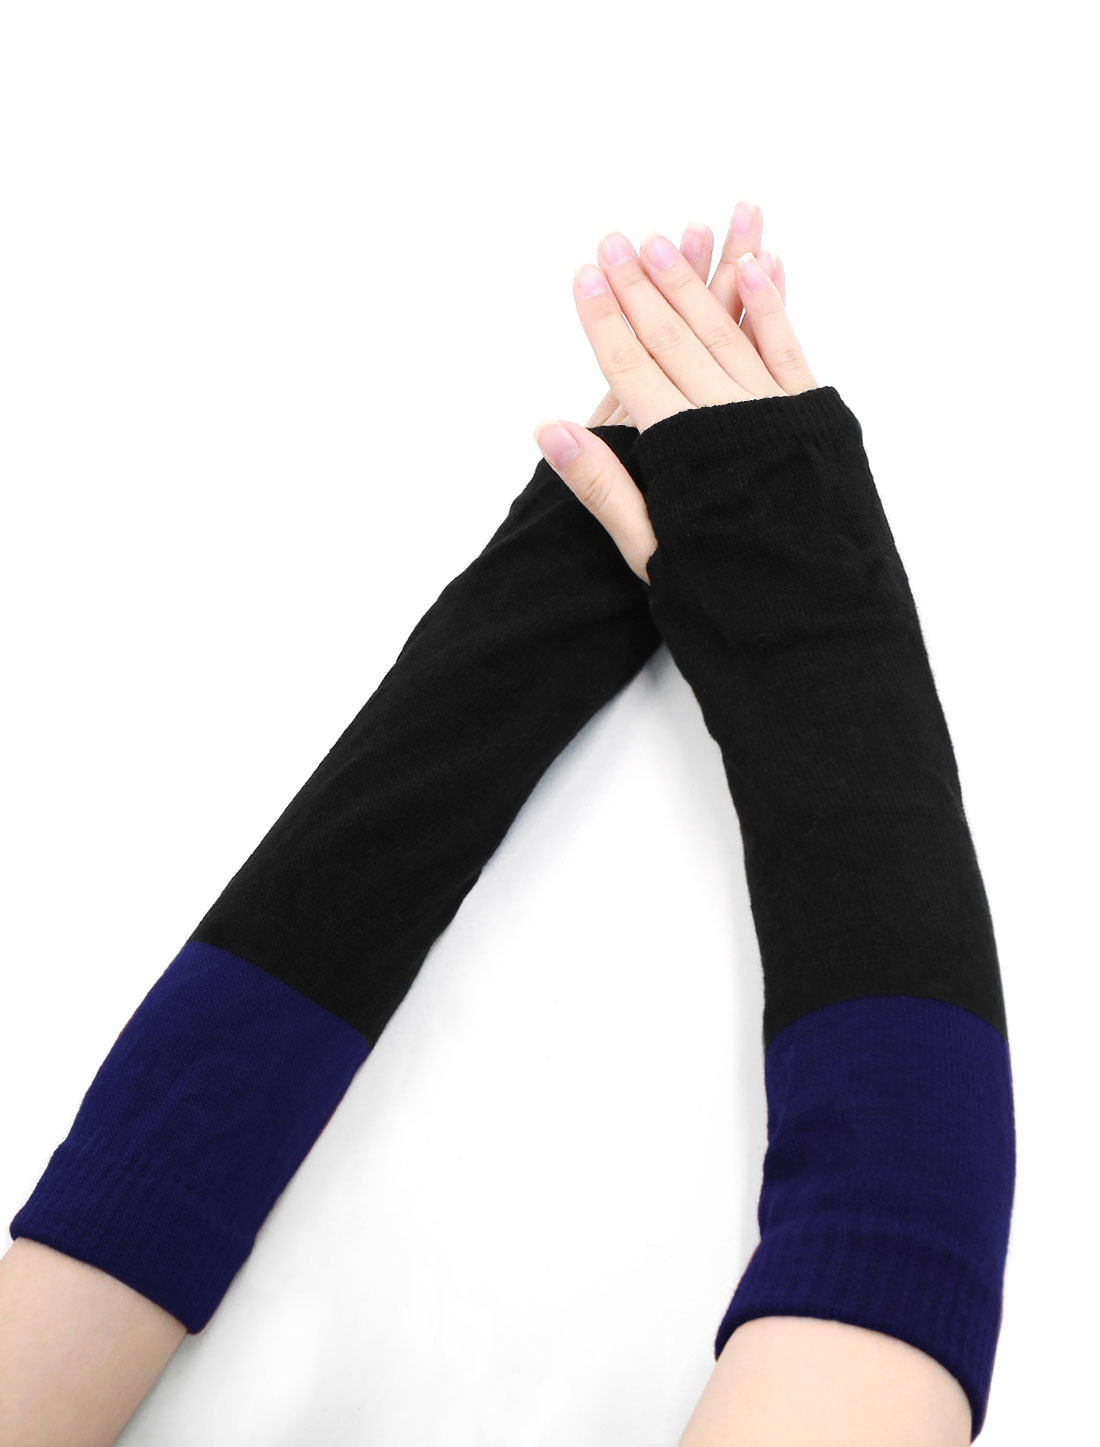 Lady Color Block Knit Fingerless Gloves Pair Blue Black